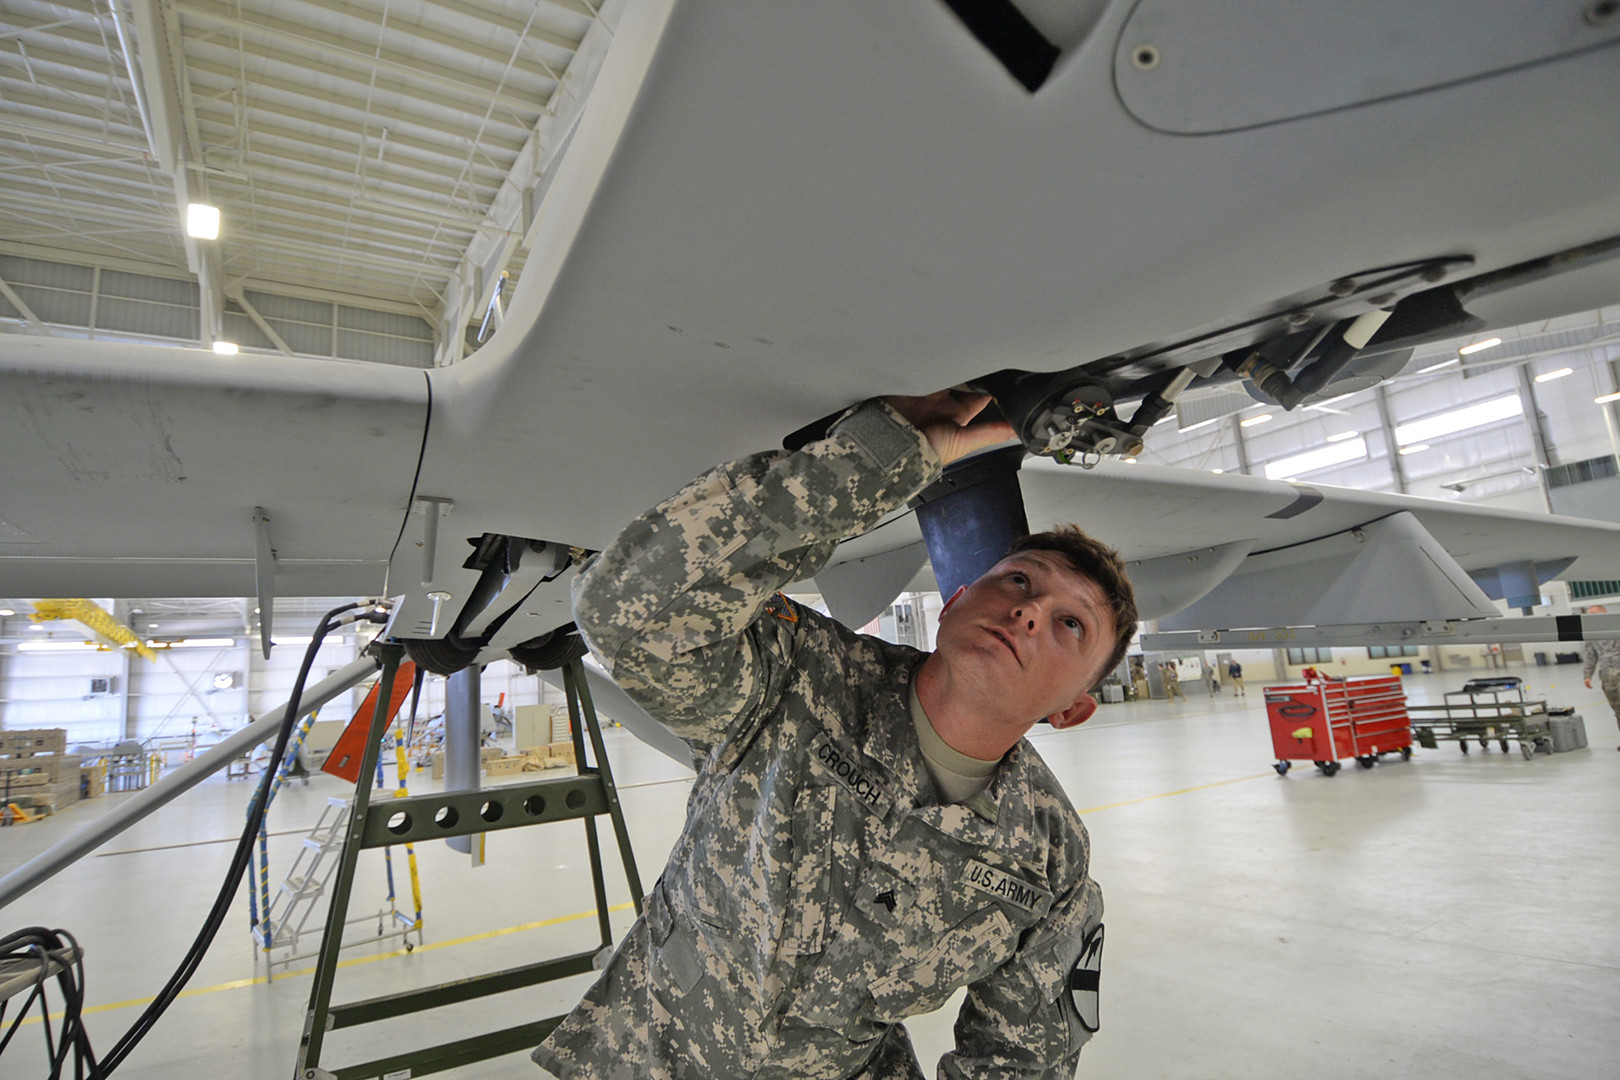 Sgt. Joseph Crouch, an unmanned aircraft systems repairer, performs preflight operational checks on a Gray Eagle UAV's landing gear. (Photo by Meghan Portillo/NCO Journal)